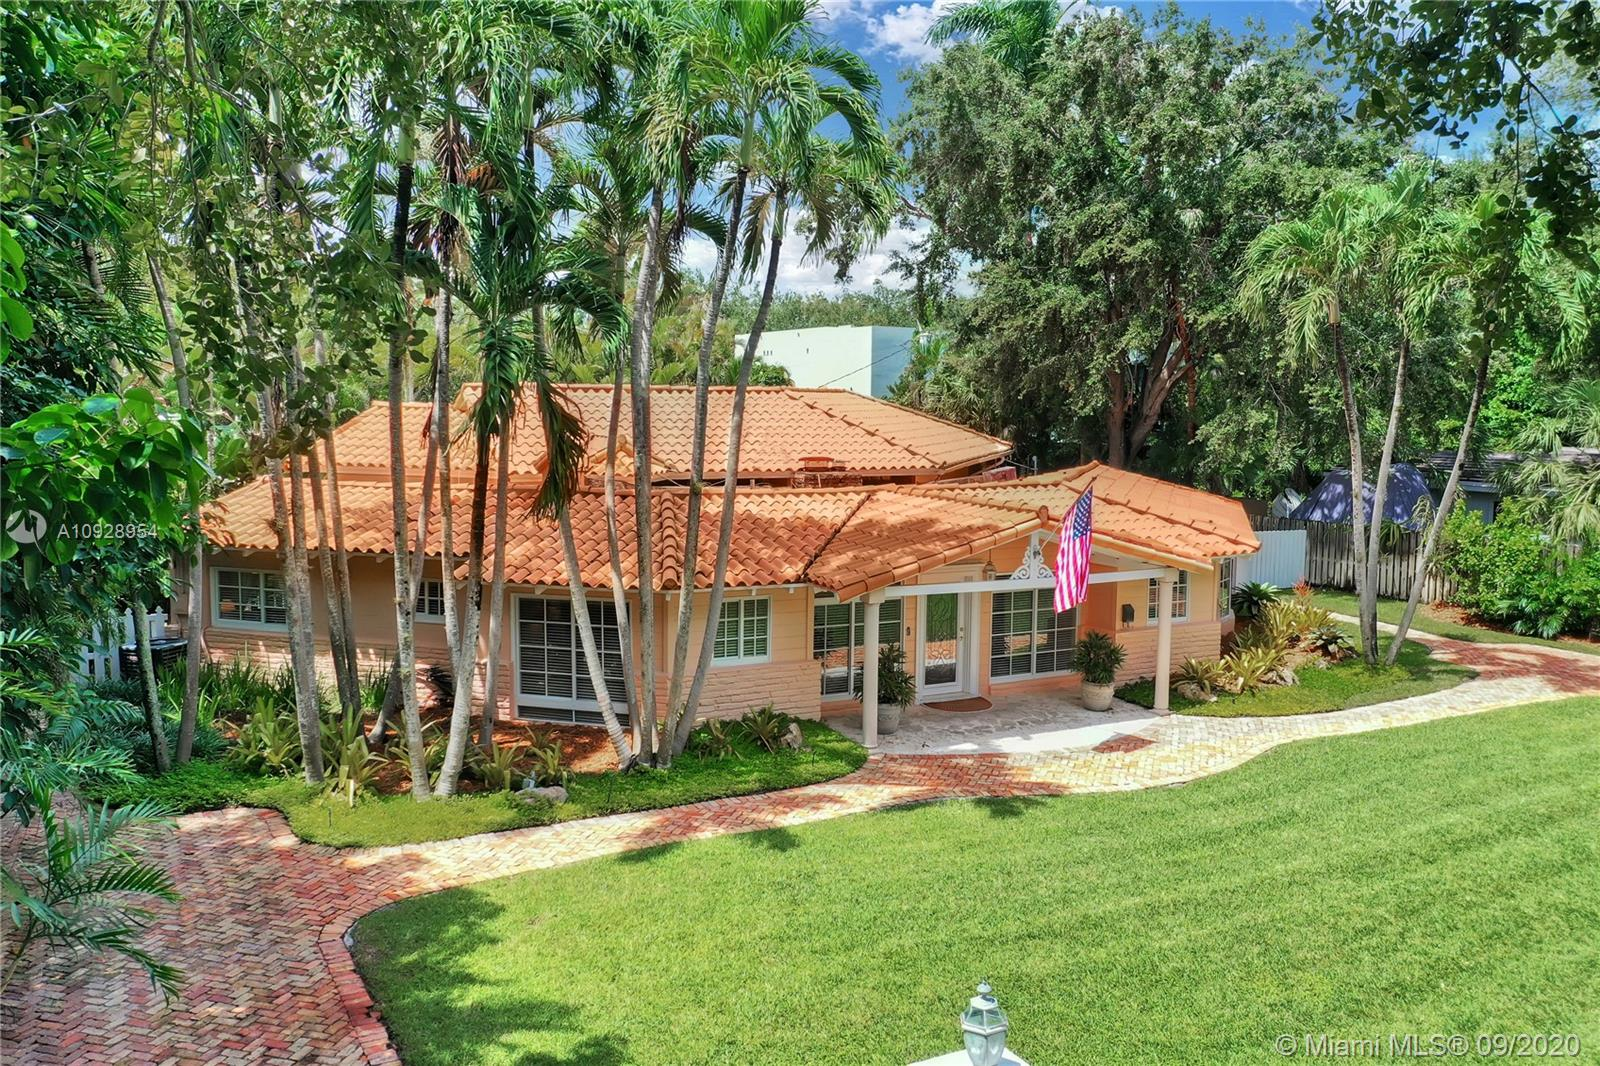 """This cottage-style charmer is located on a quiet, tree-lined street in the beautiful Ponce Davis/High Pines neighborhood. The home features high volume ceilings w/ exposed beams, marble/wood flooring, & new impact windows & doors. The light & bright, wide-open living spaces open to a lushly landscaped tropical waterfall, pool/patio oasis, w/Jacuzzi, & spacious gazebo for entertaining. Other details include 6"""" base/crown molding, Waterworks bath fixtures, 2 New A/C's, city water & septic. Close to favored South Miami/Gables/Grove, parks, shops, restaurants, & top schools. Come fall in love with this charming, tropical home within one of Miami's most sought after neighborhoods."""